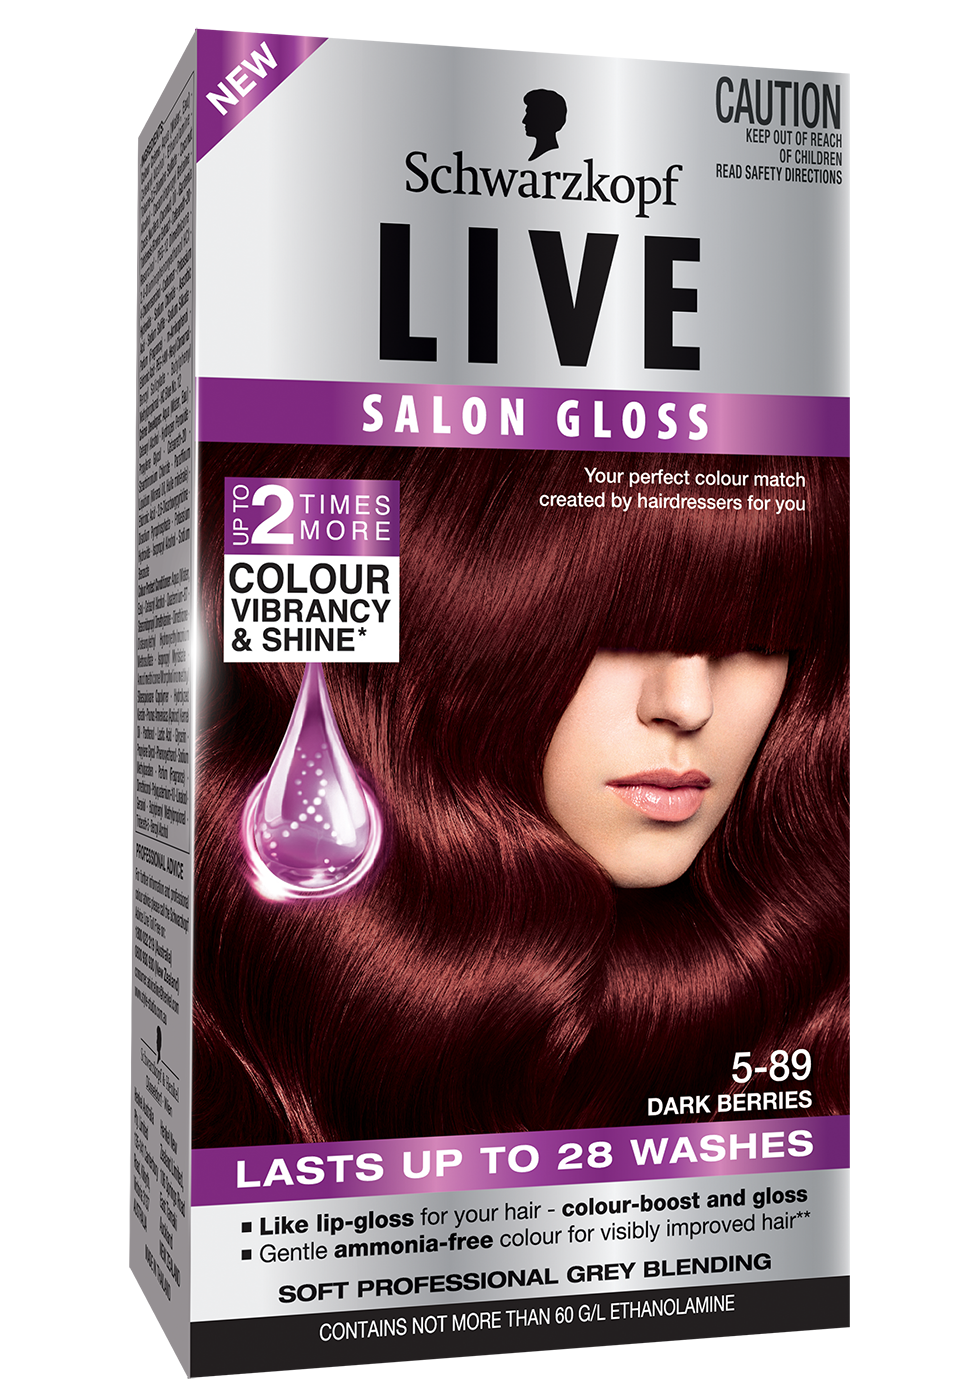 300LIVESalonGloss3DLF589DarkBerries